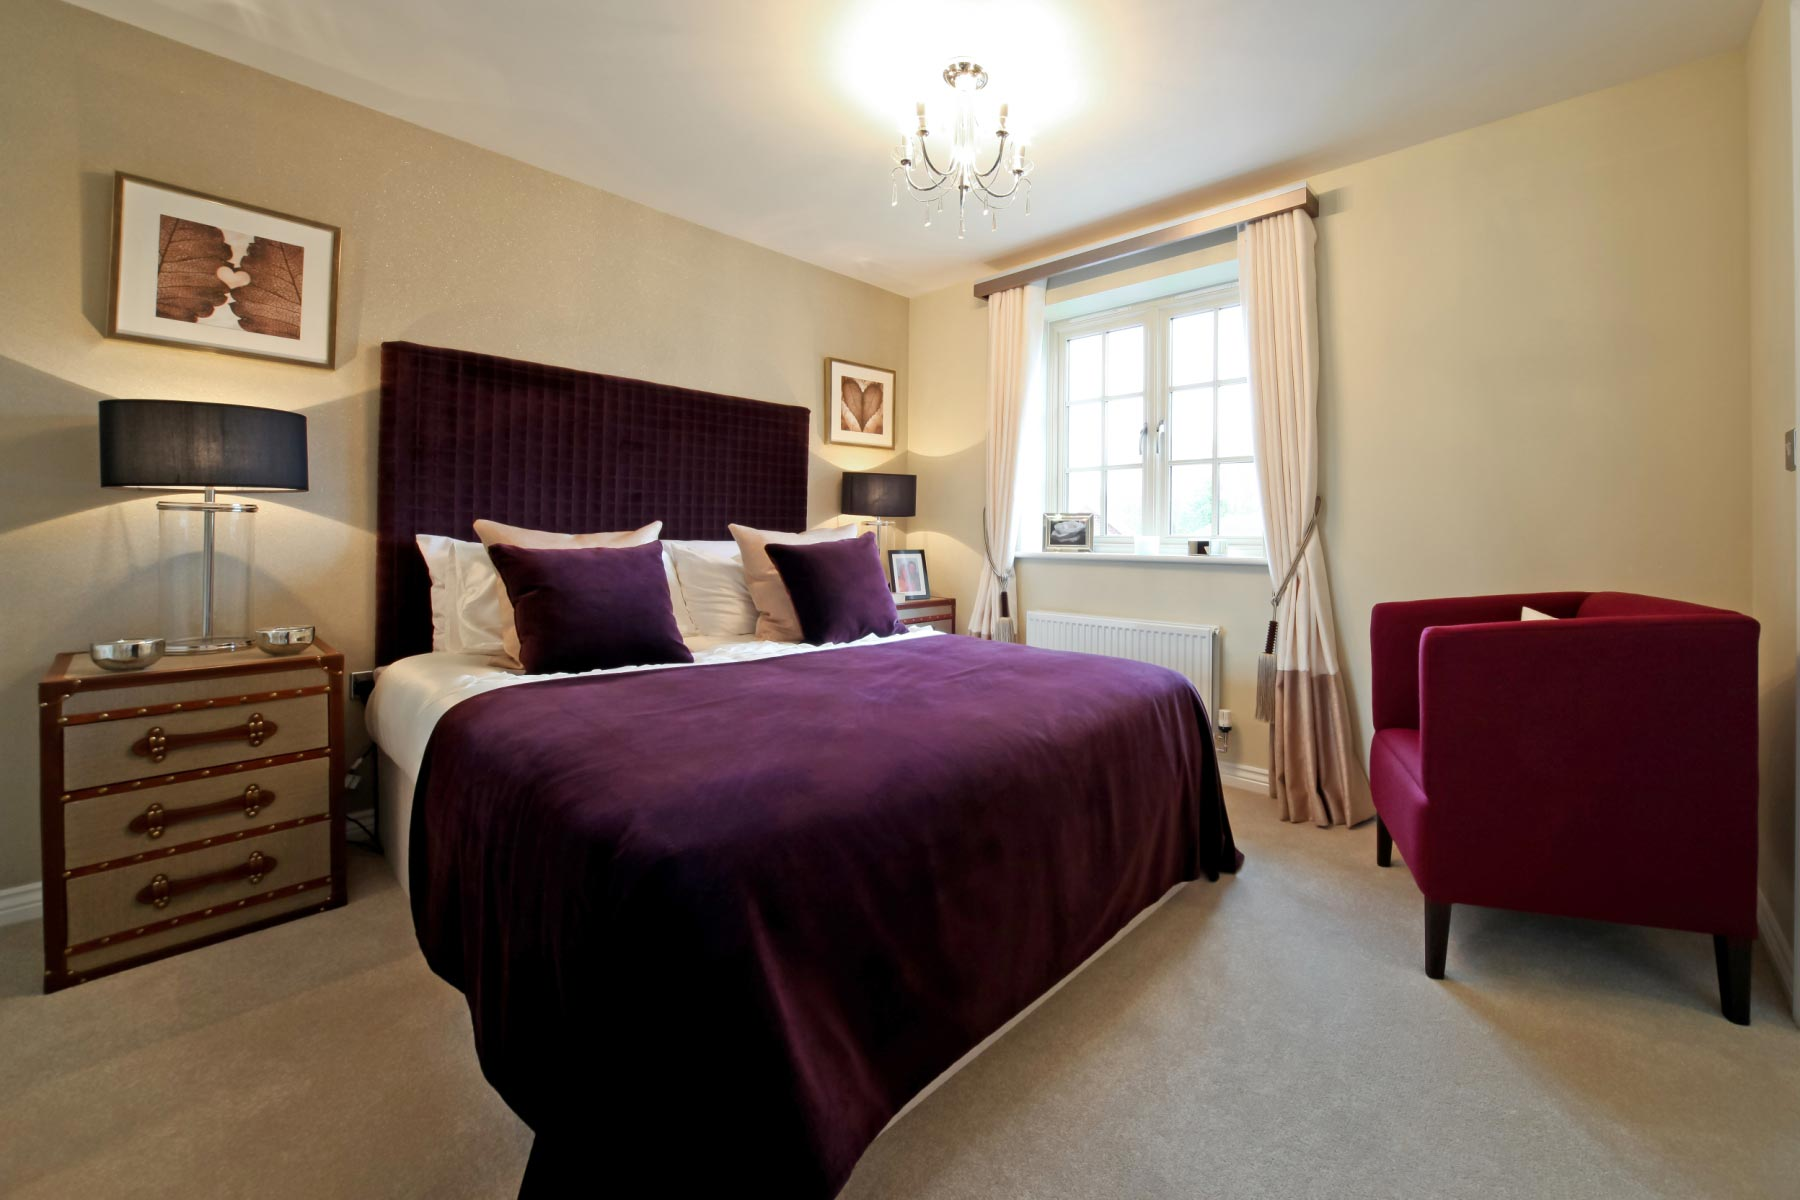 Taylor Wimpey typical second bedroom